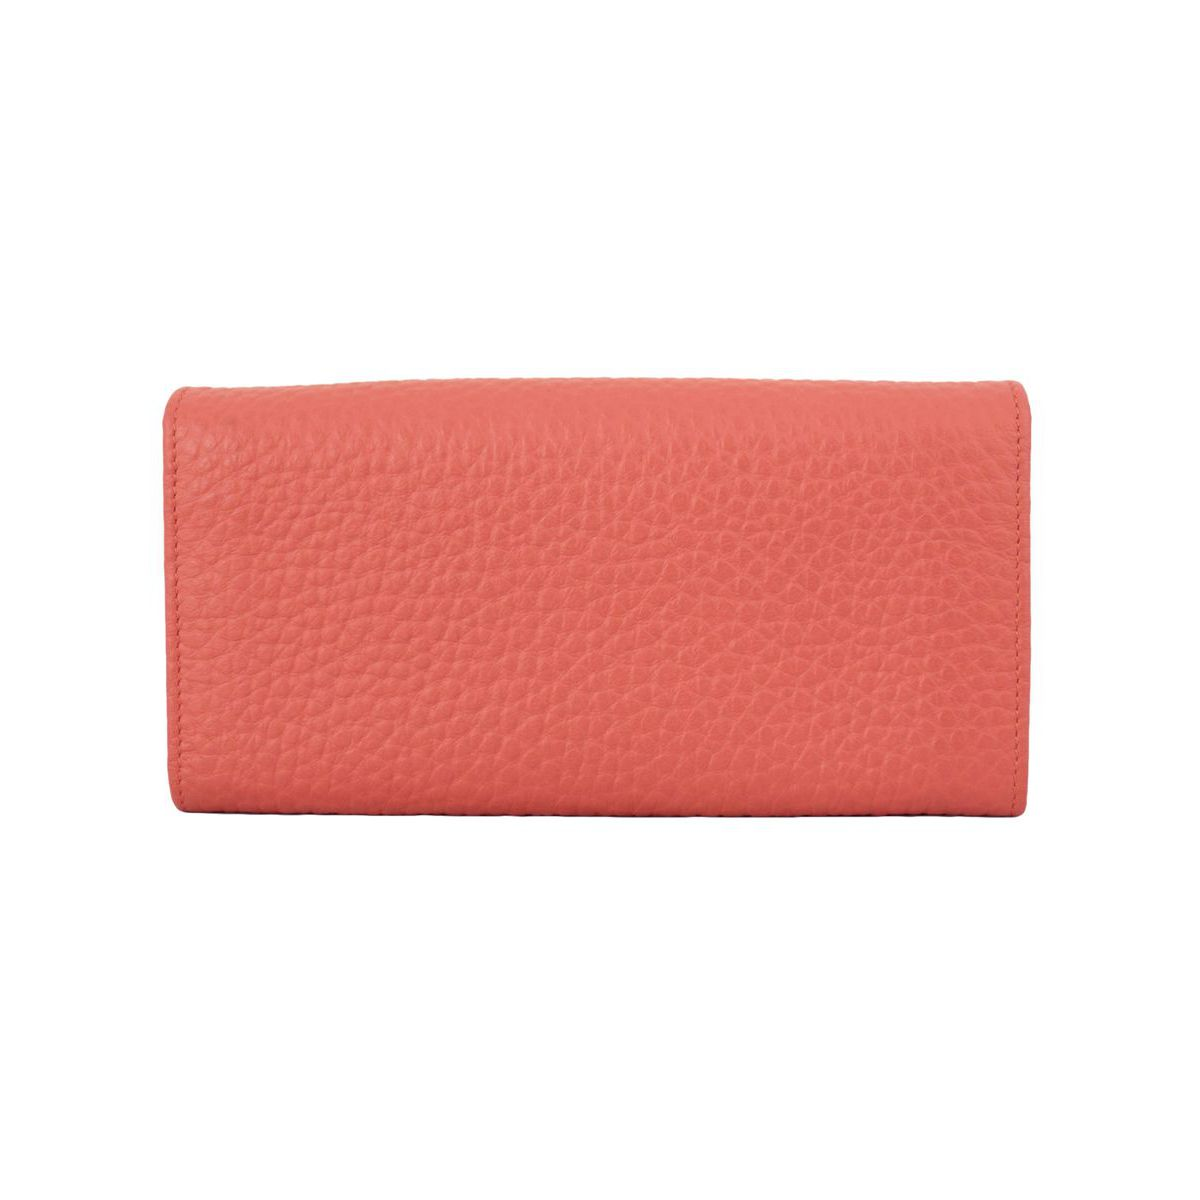 Soft leather wallet Coral Orciani